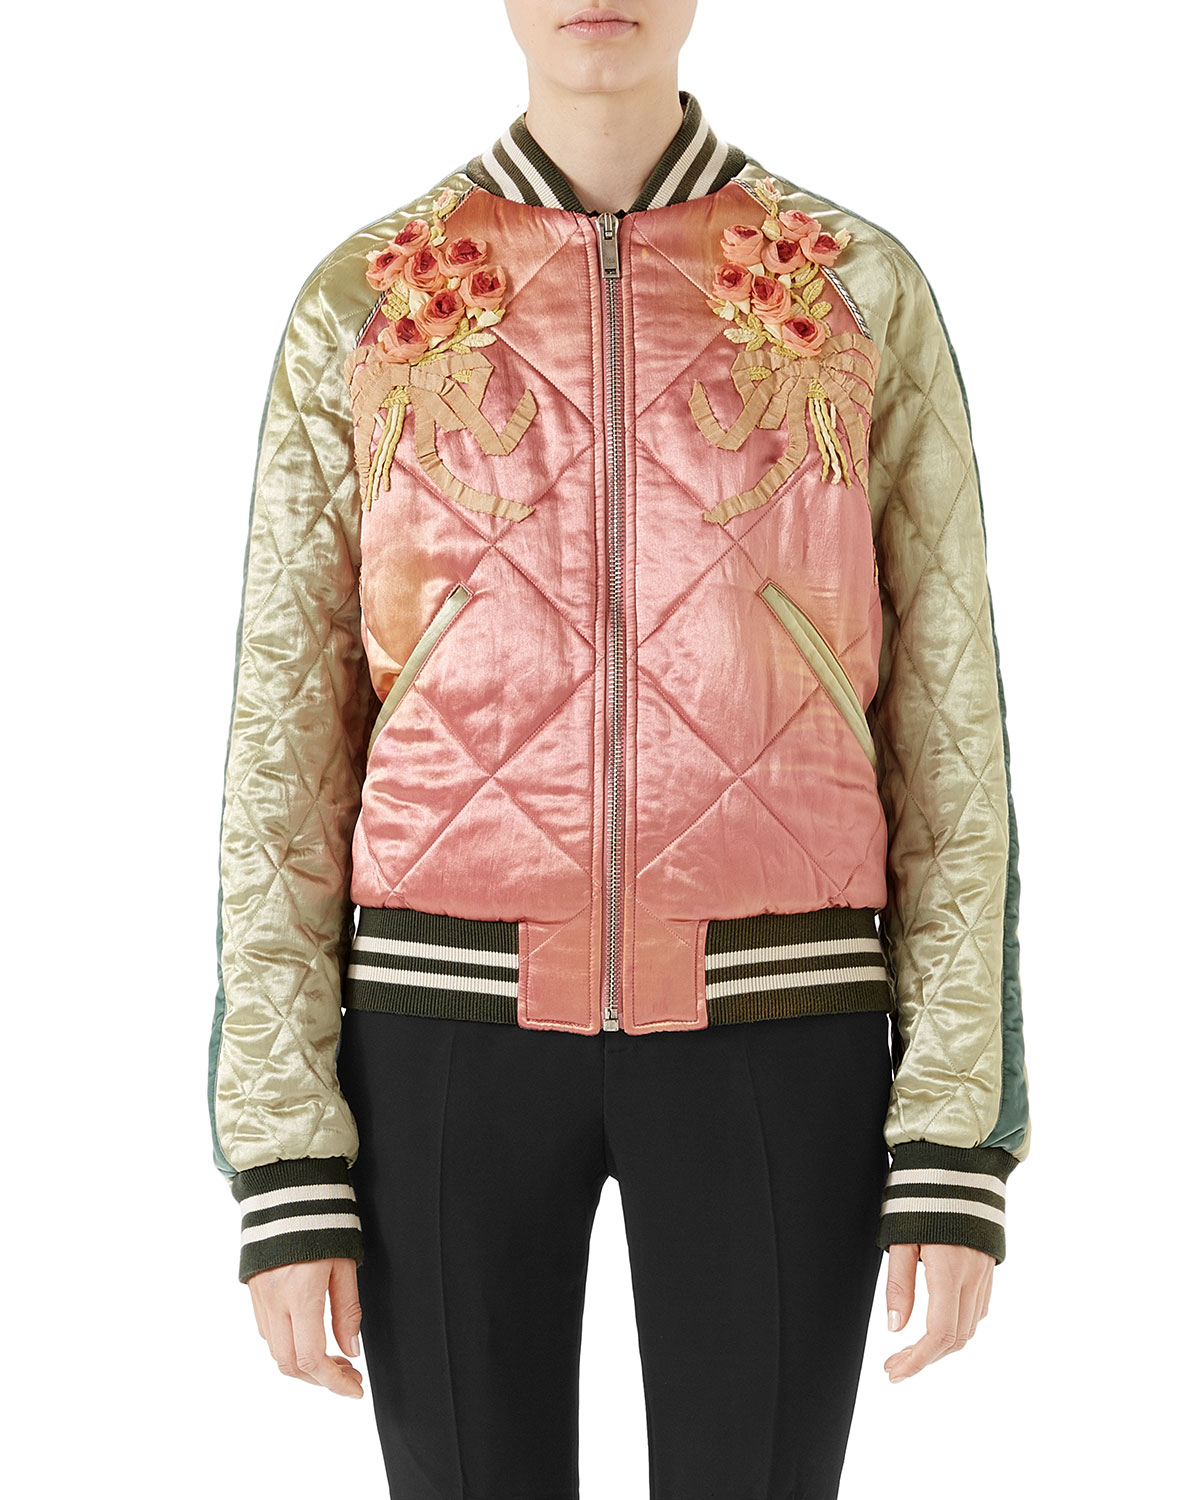 38d542e39 Gucci Embroidered Acetate Bomber Jacket | Neiman Marcus